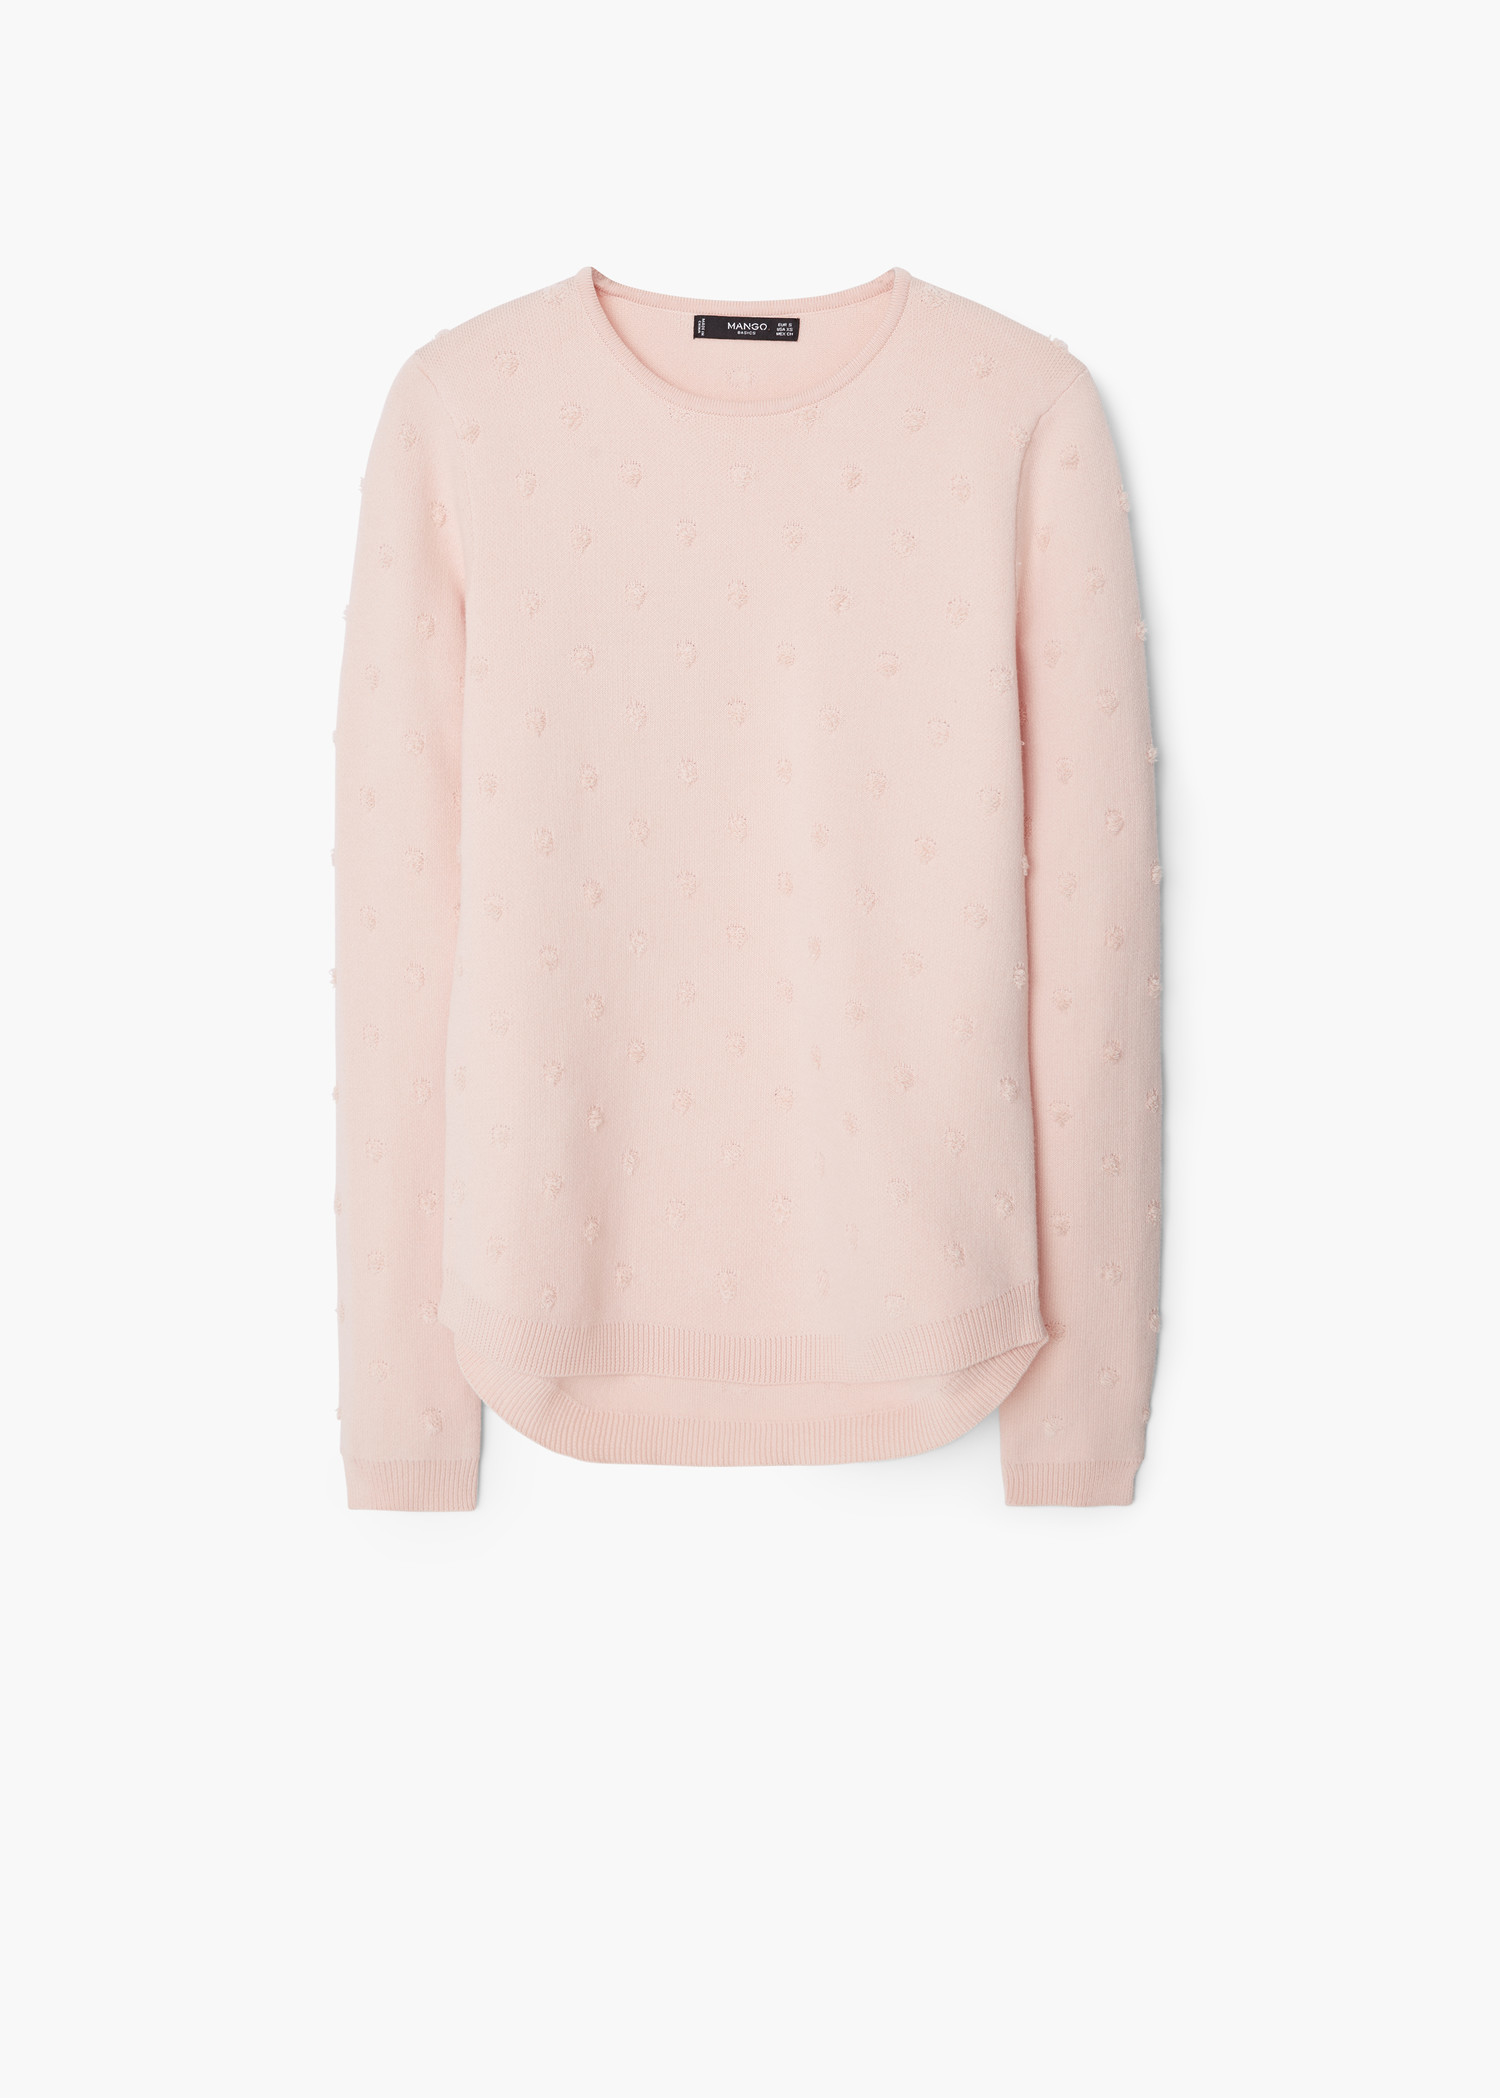 Mango Cotton Appliqués Sweater in Pink | Lyst